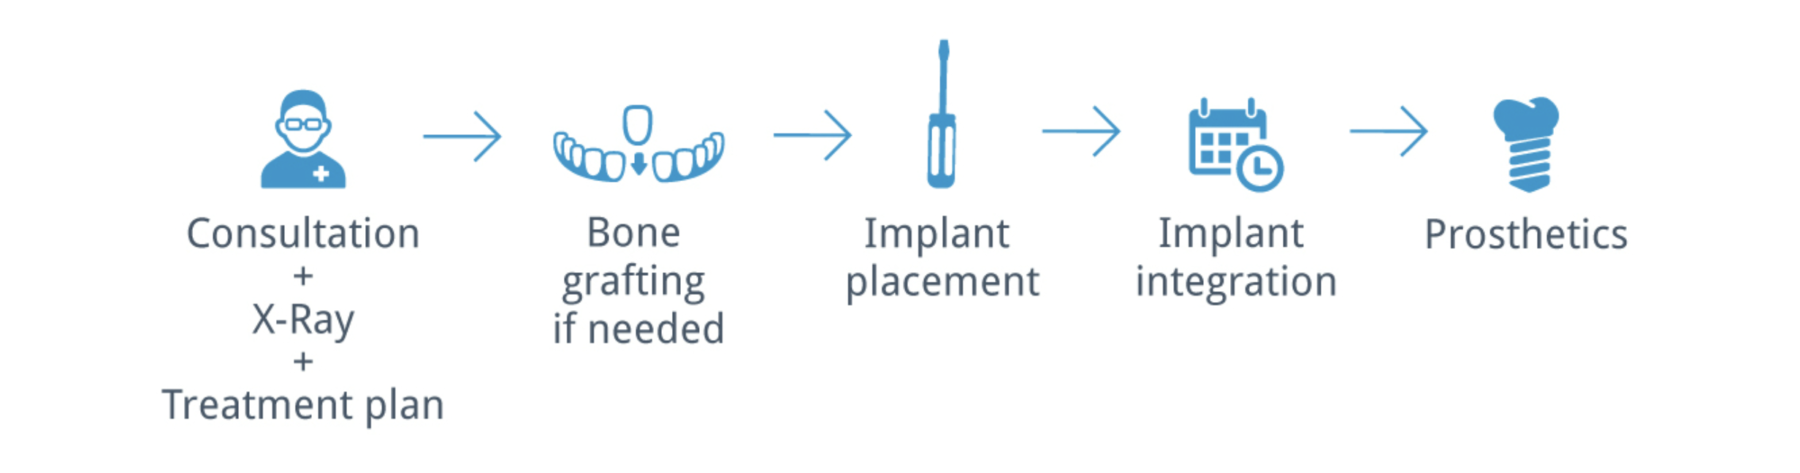 Dental Implant Procedure in London - NW1 Dental Care